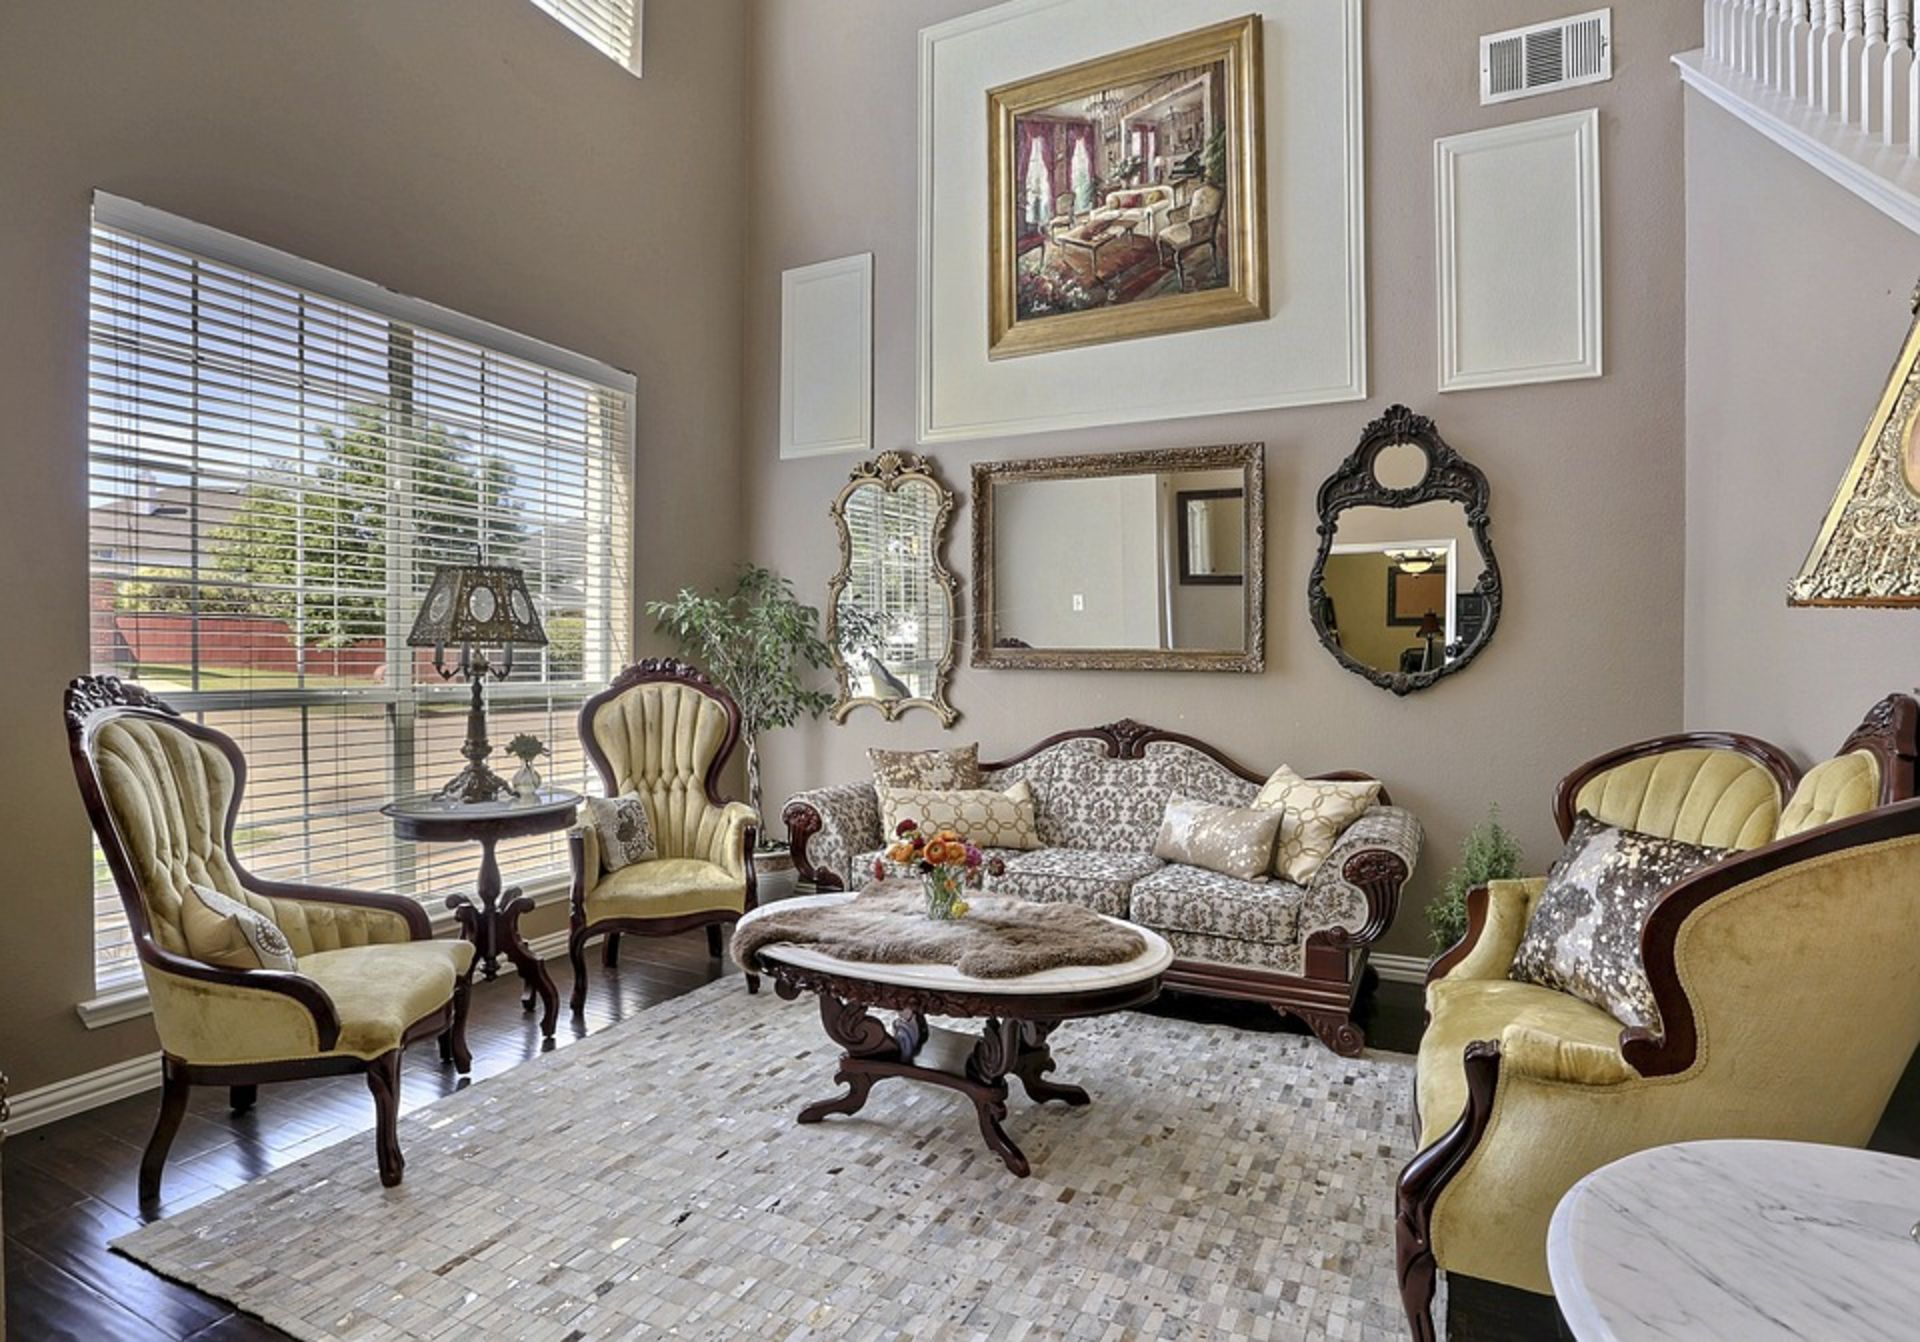 Sell Your Home Quickly With Fresh Staging Tips